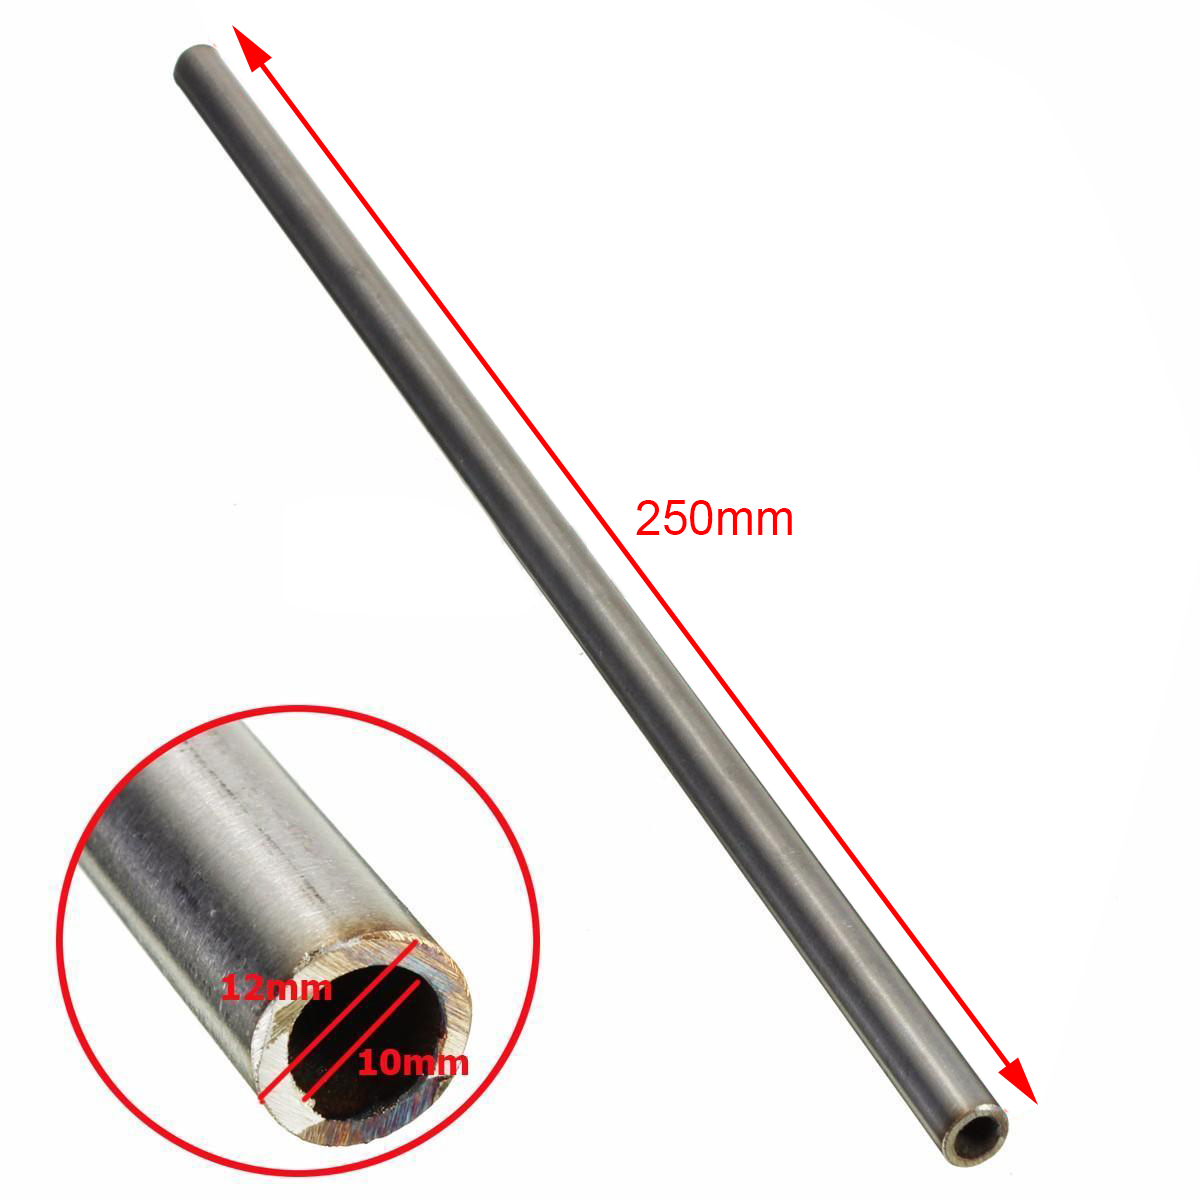 1pc 304 Stainless Steel Capillary Tube Pipe 12mm OD 10mm ID 250mm Length Silver For Home Industry Tools